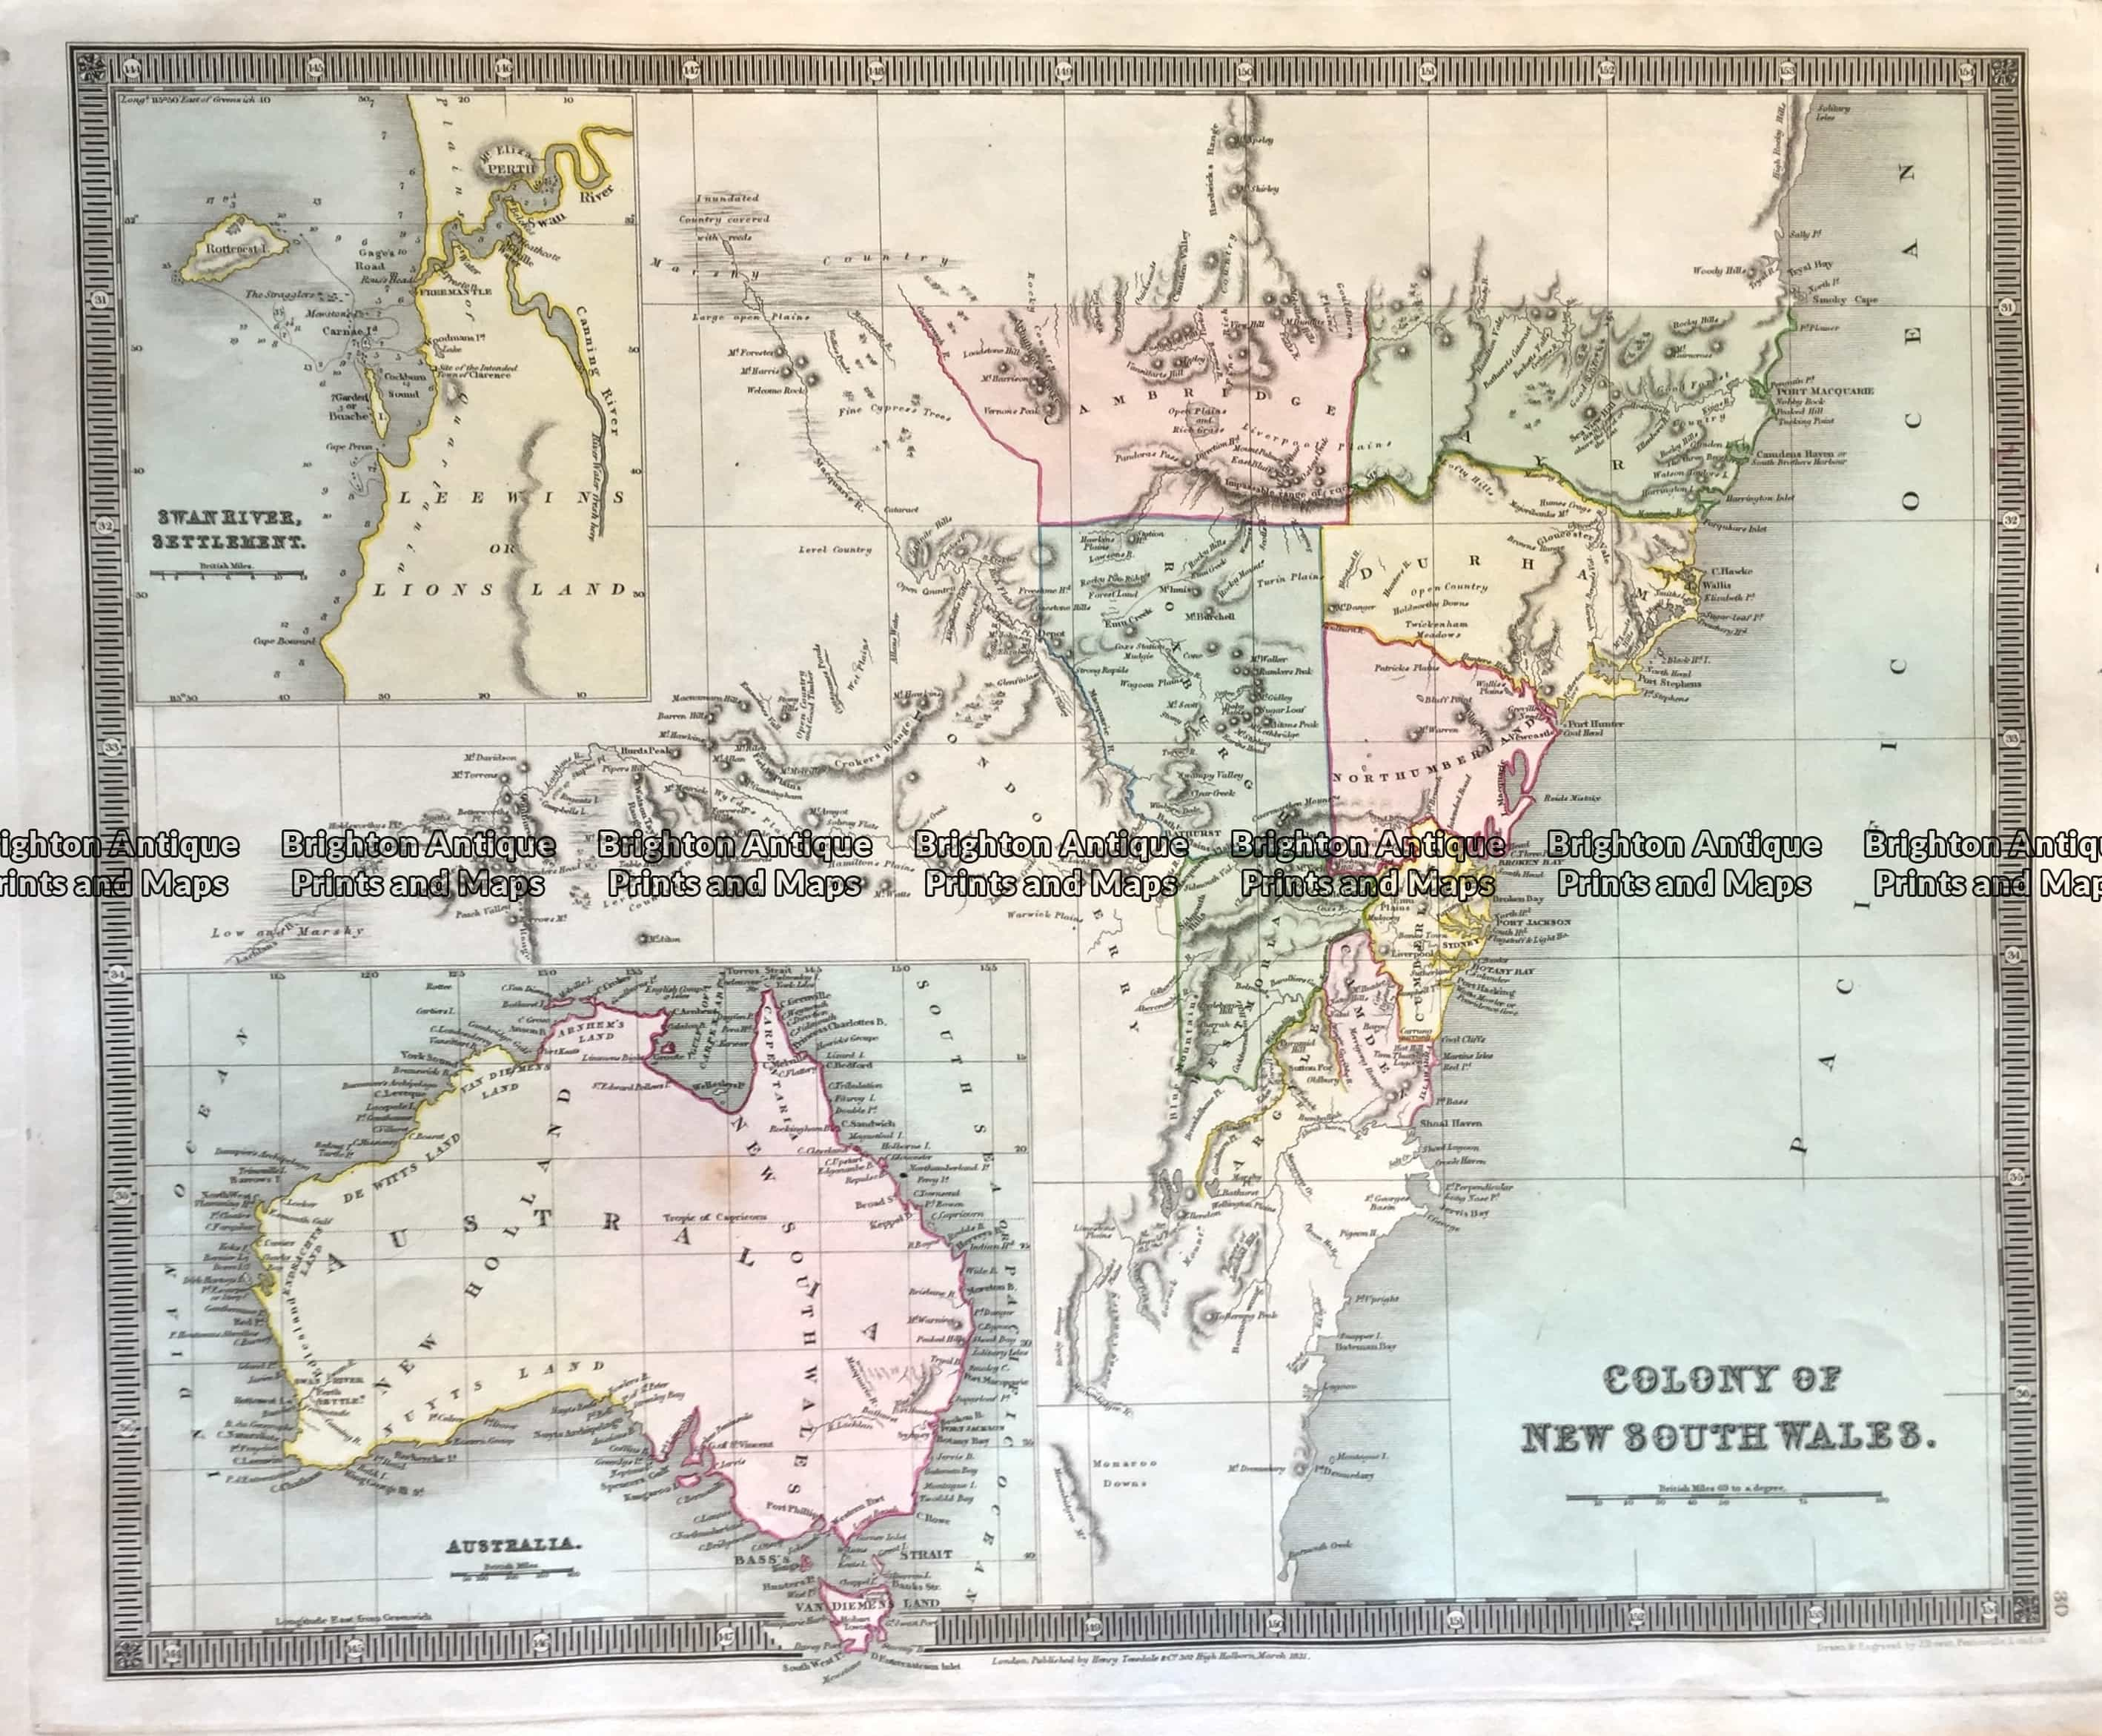 Nsw Map Australia.Details About Antique Map 3 818 Nsw And Australia By Teasdale C 1844 Australia Continent